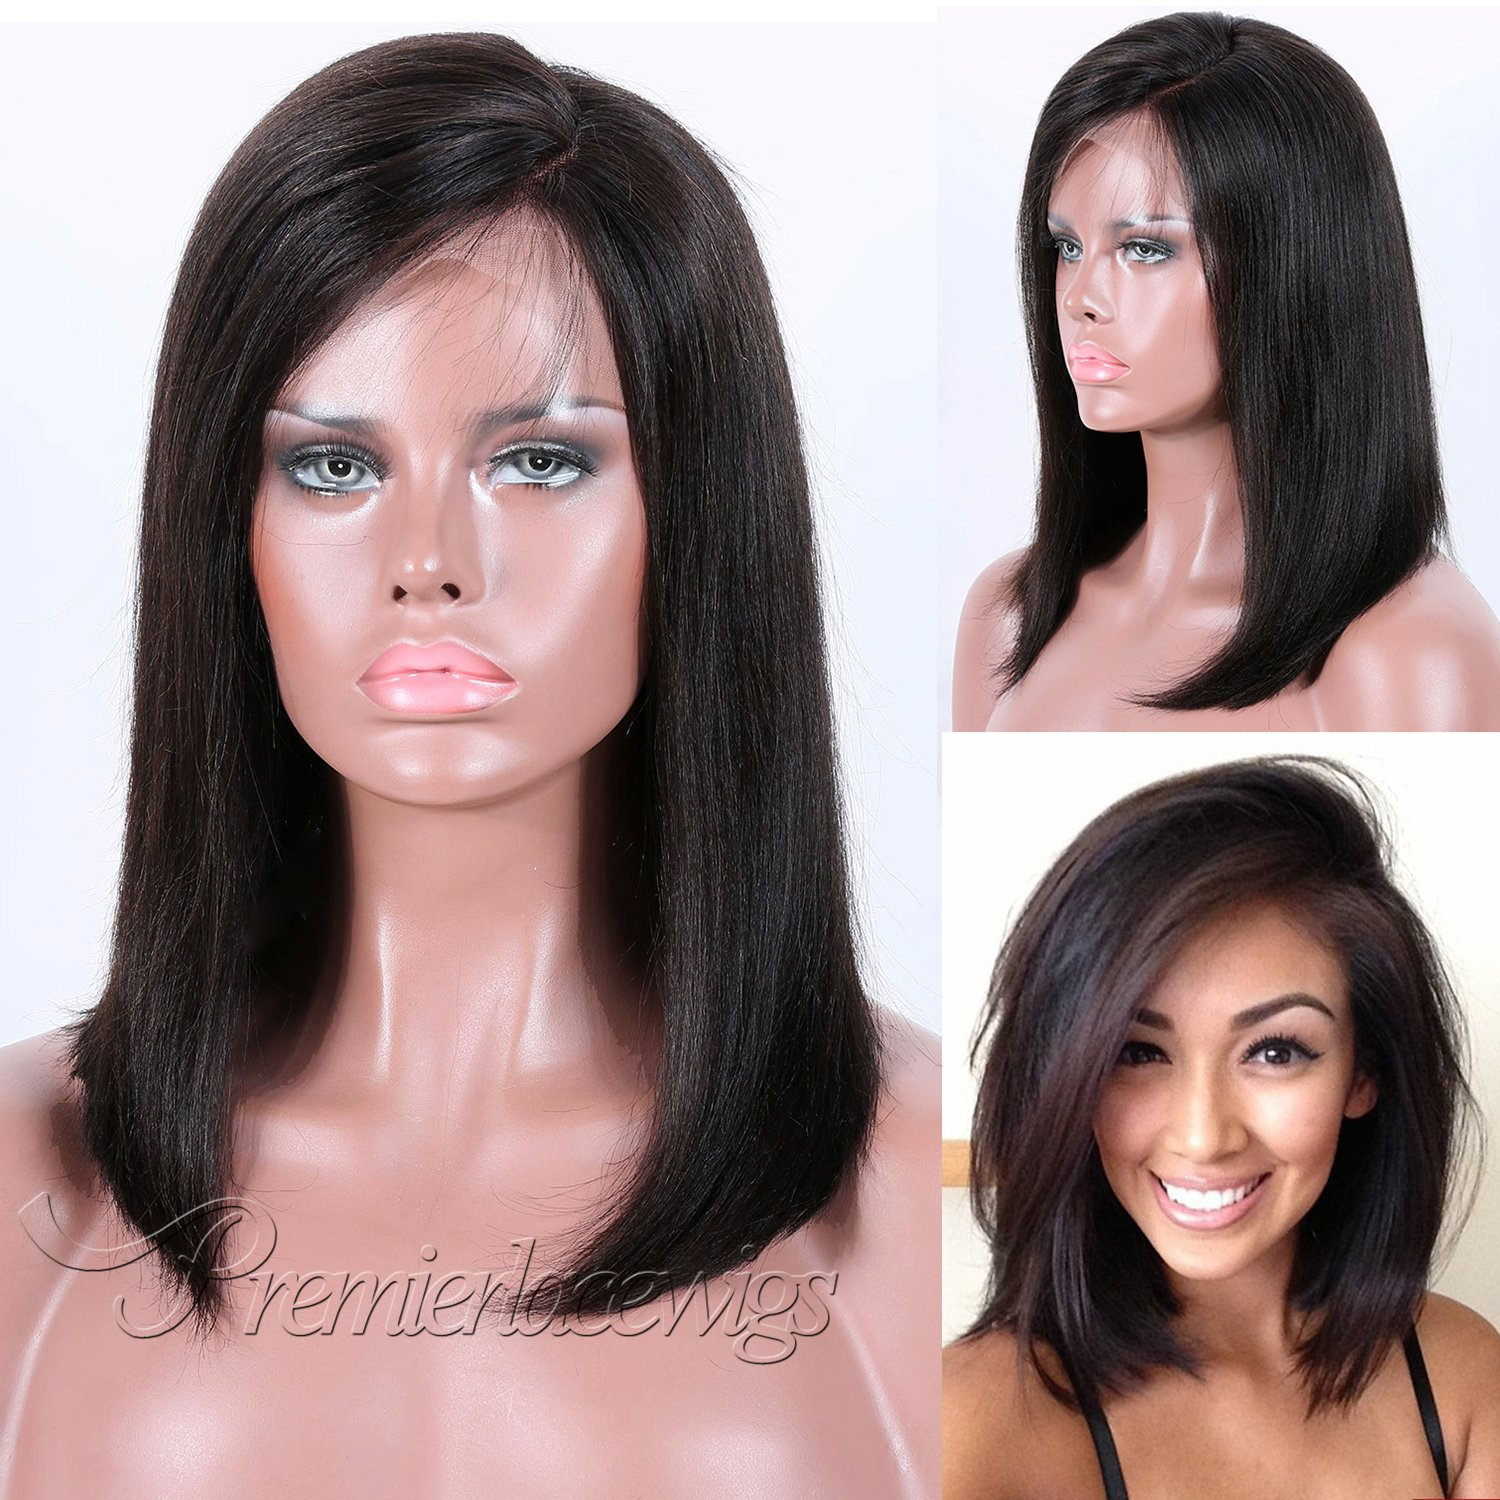 Amazon.com : Premier Bob Lace Front Wigs Short Human Hair Wigs for Women 160% Density Brazilian Light Yaki Straight Hair improved 4.5